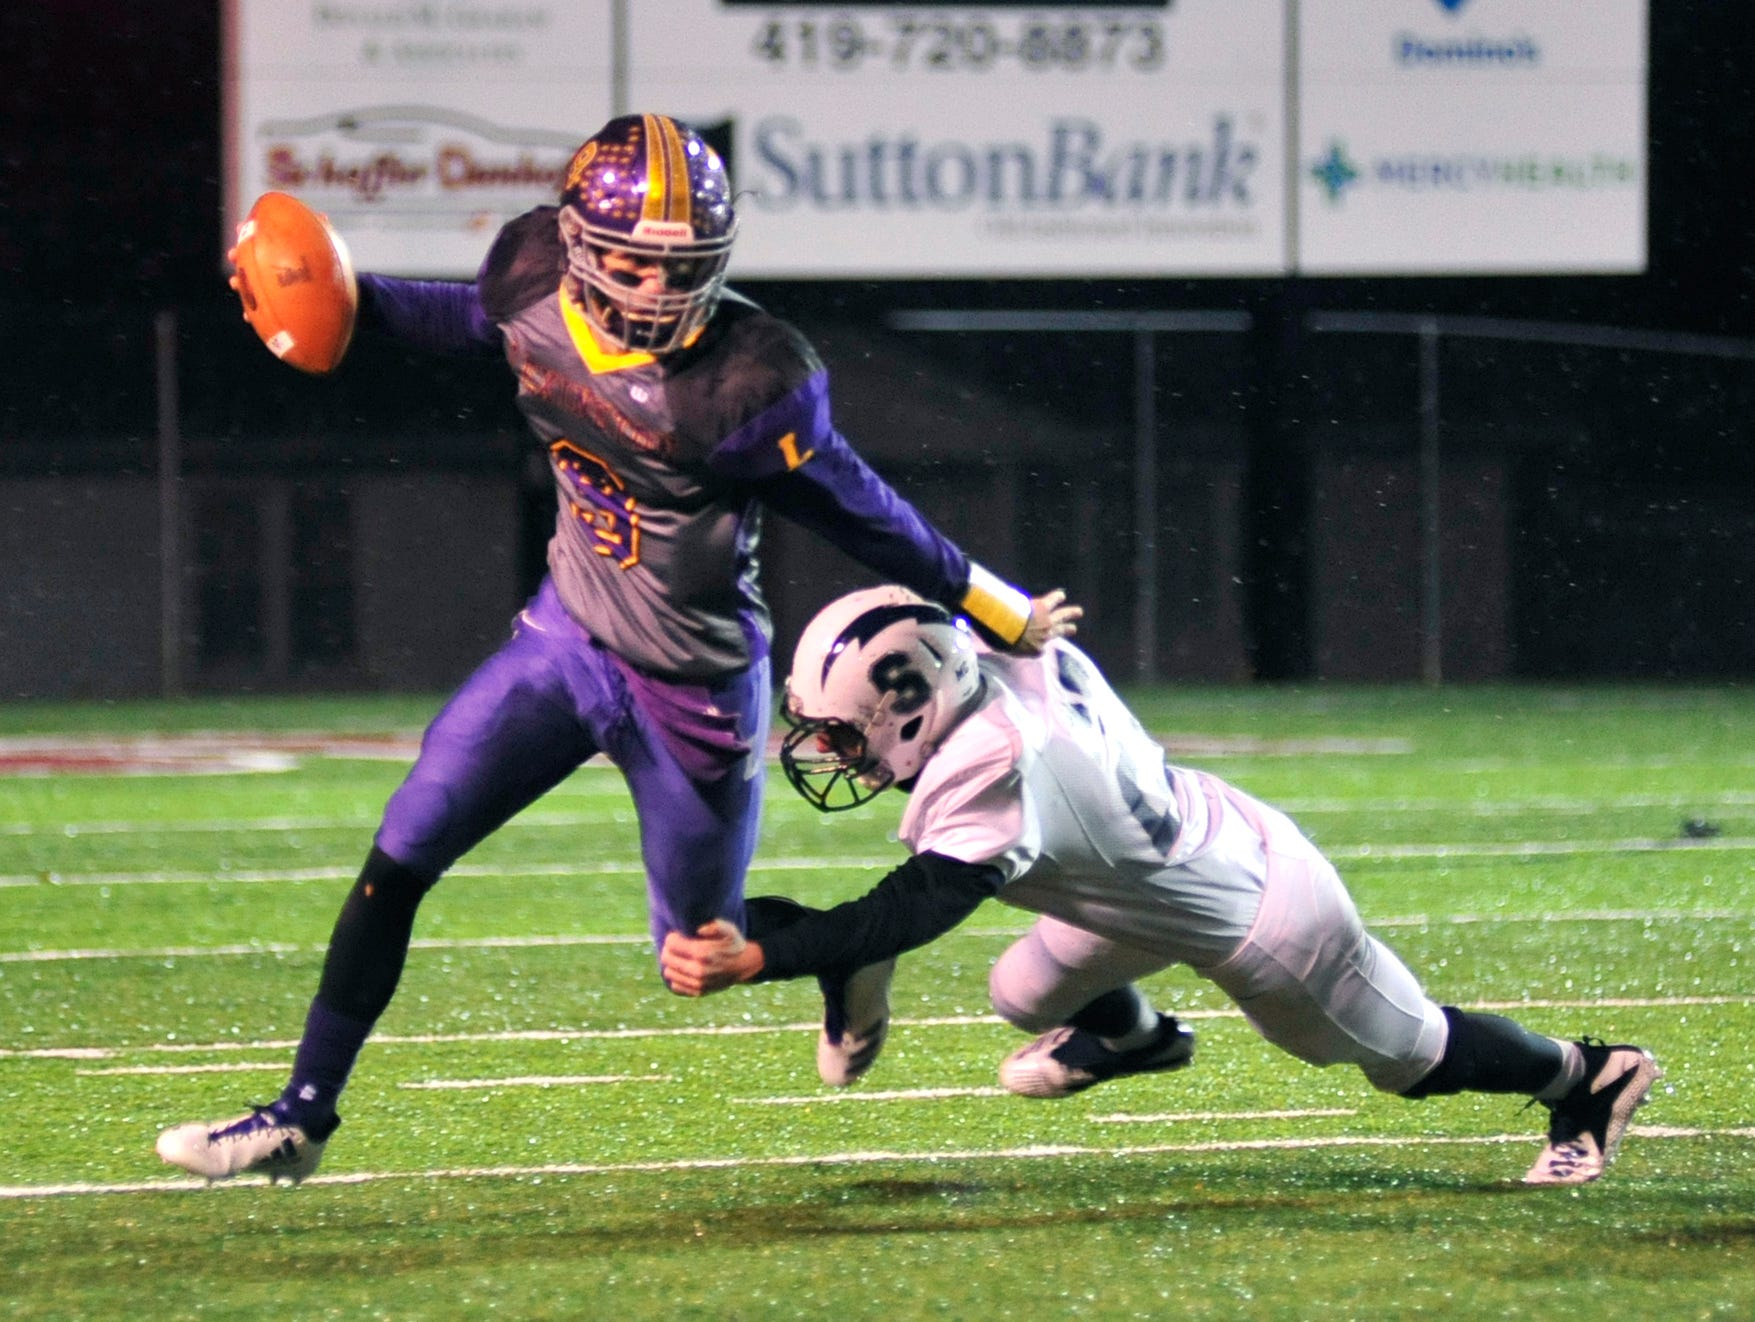 Lexington's Jake Depperschmidt out maneuvers a Sandusky player while playing at Willard High School on Friday.